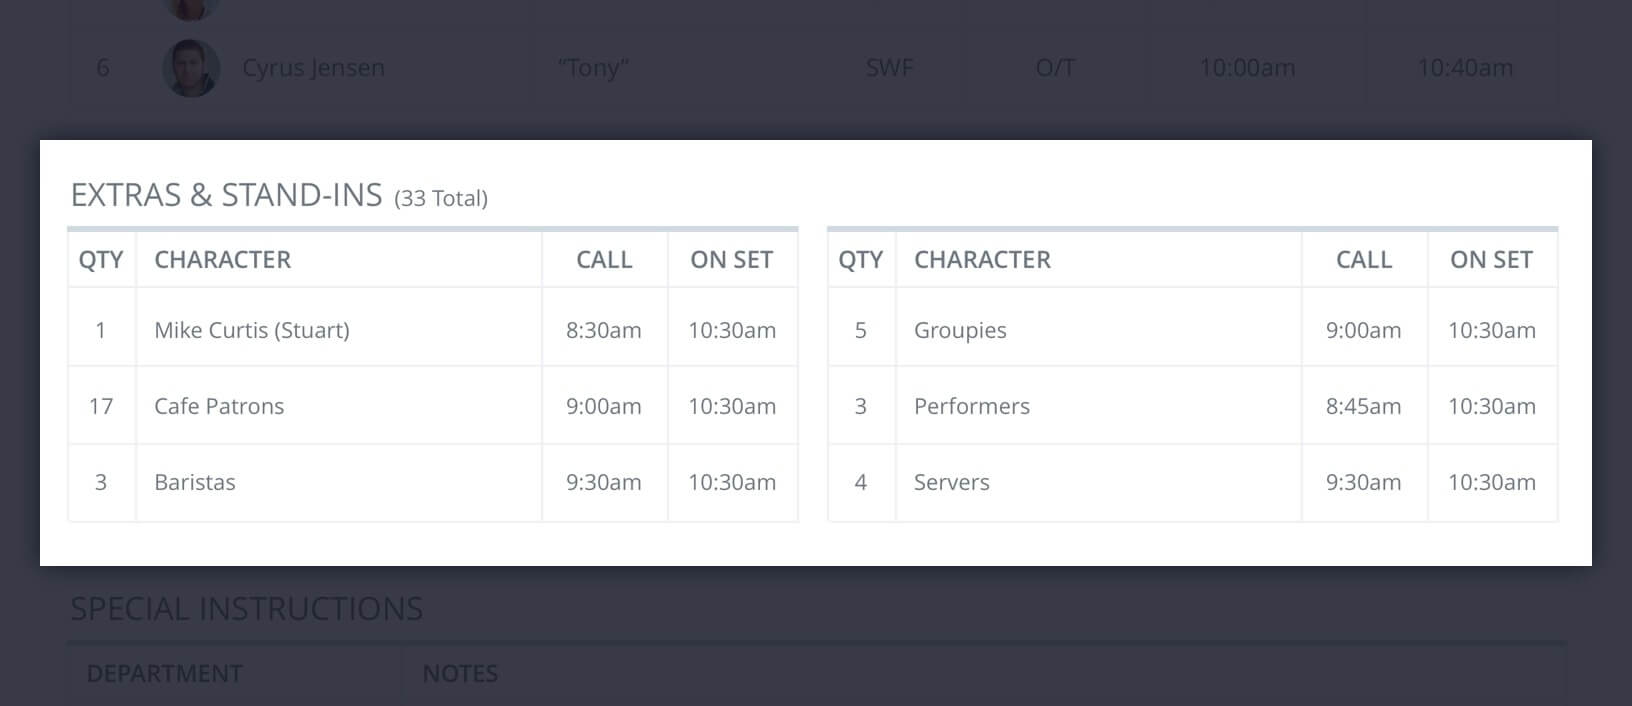 Callsheet Template Anatomy - Extras and Stand-Ins List - StudioBinder